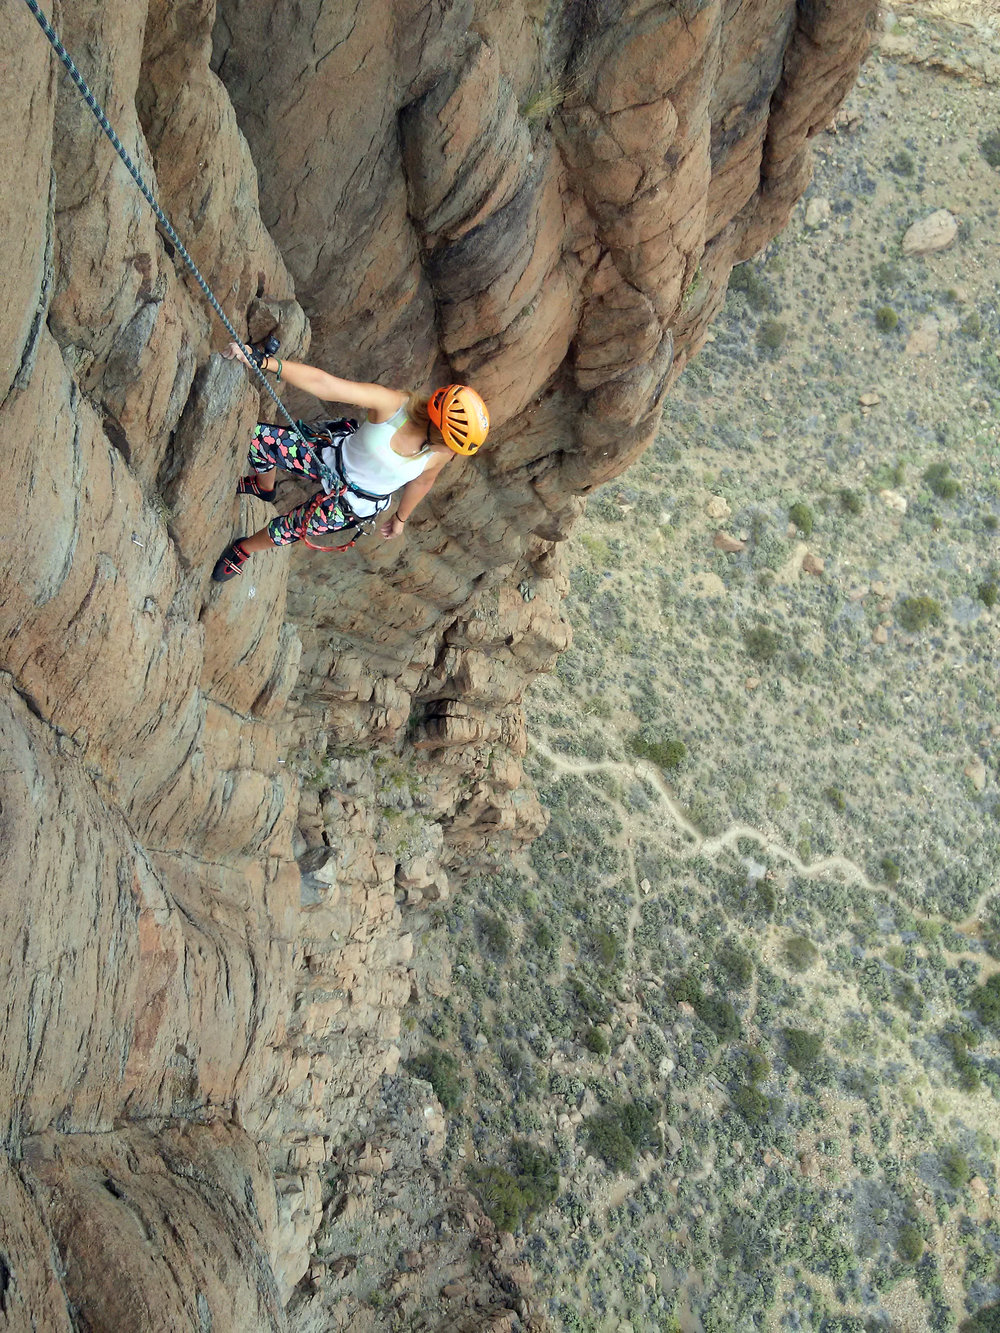 Tenerife rock climbing Adventures, Sophie Radcliffe, One Life, Live It